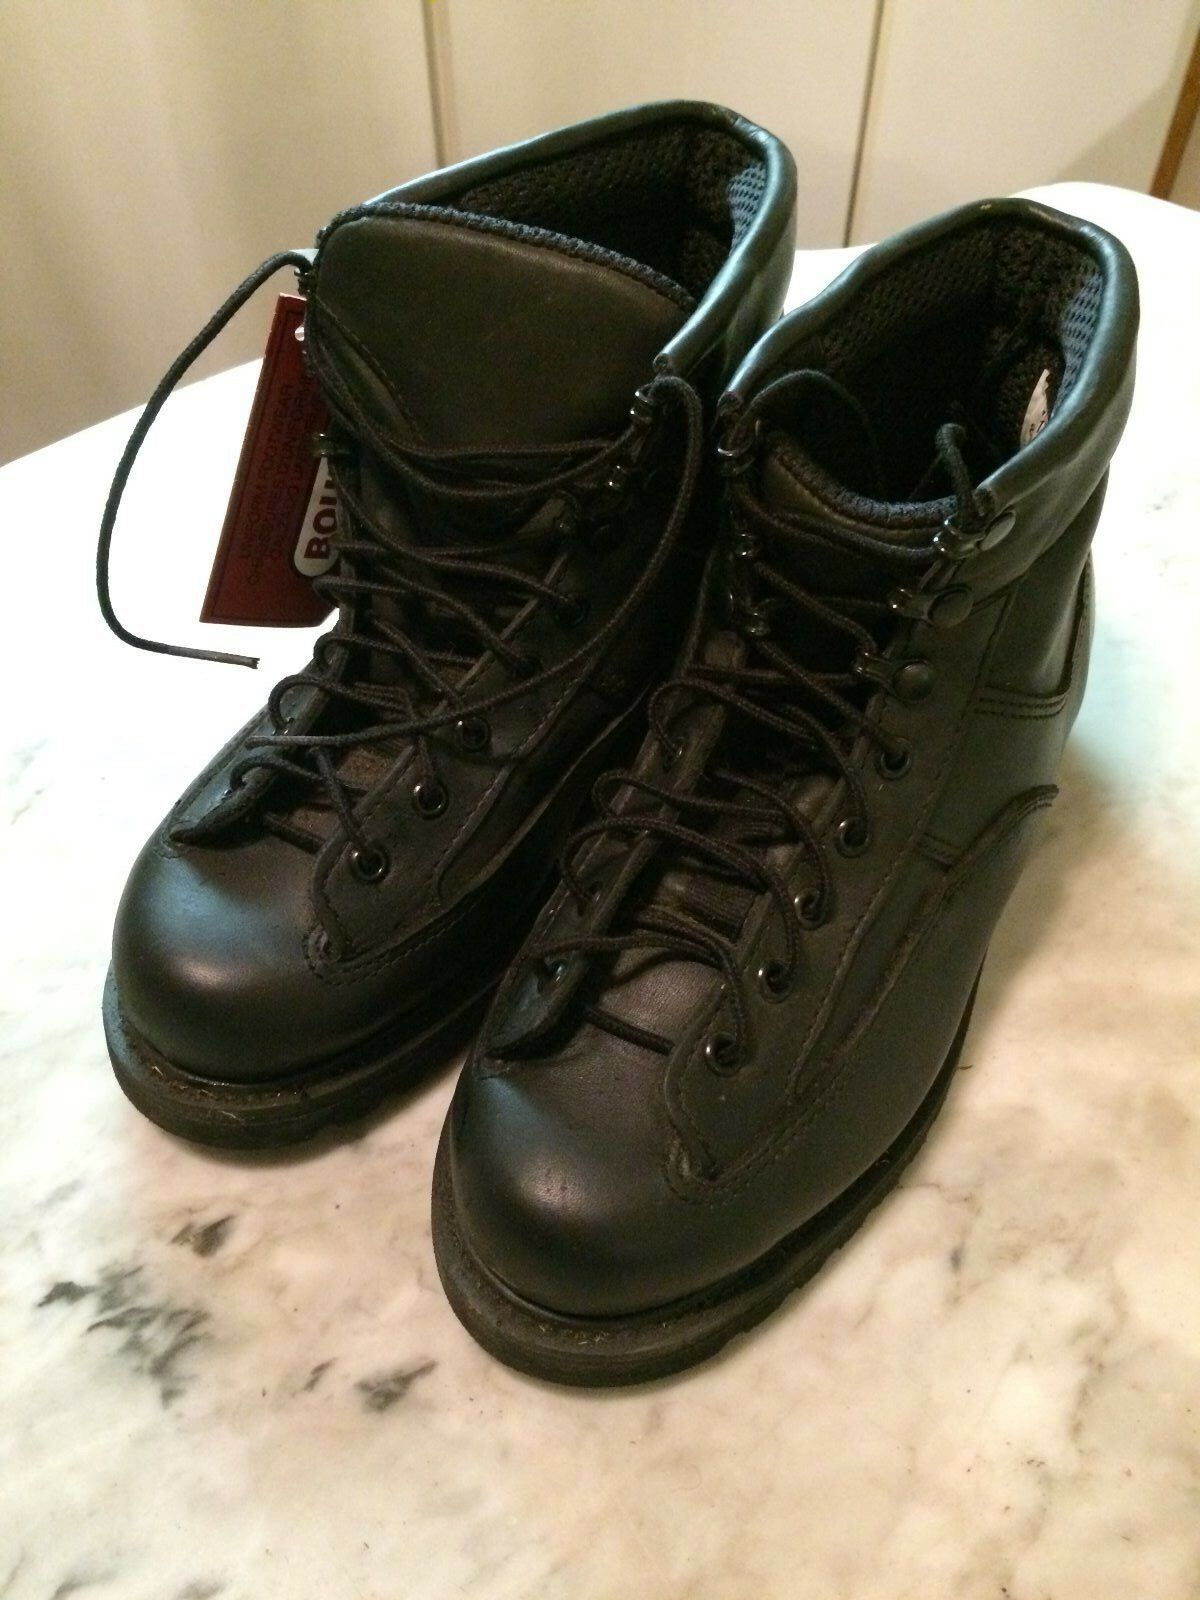 Uniform army military officer police mens shoes boots  sz 7 3E